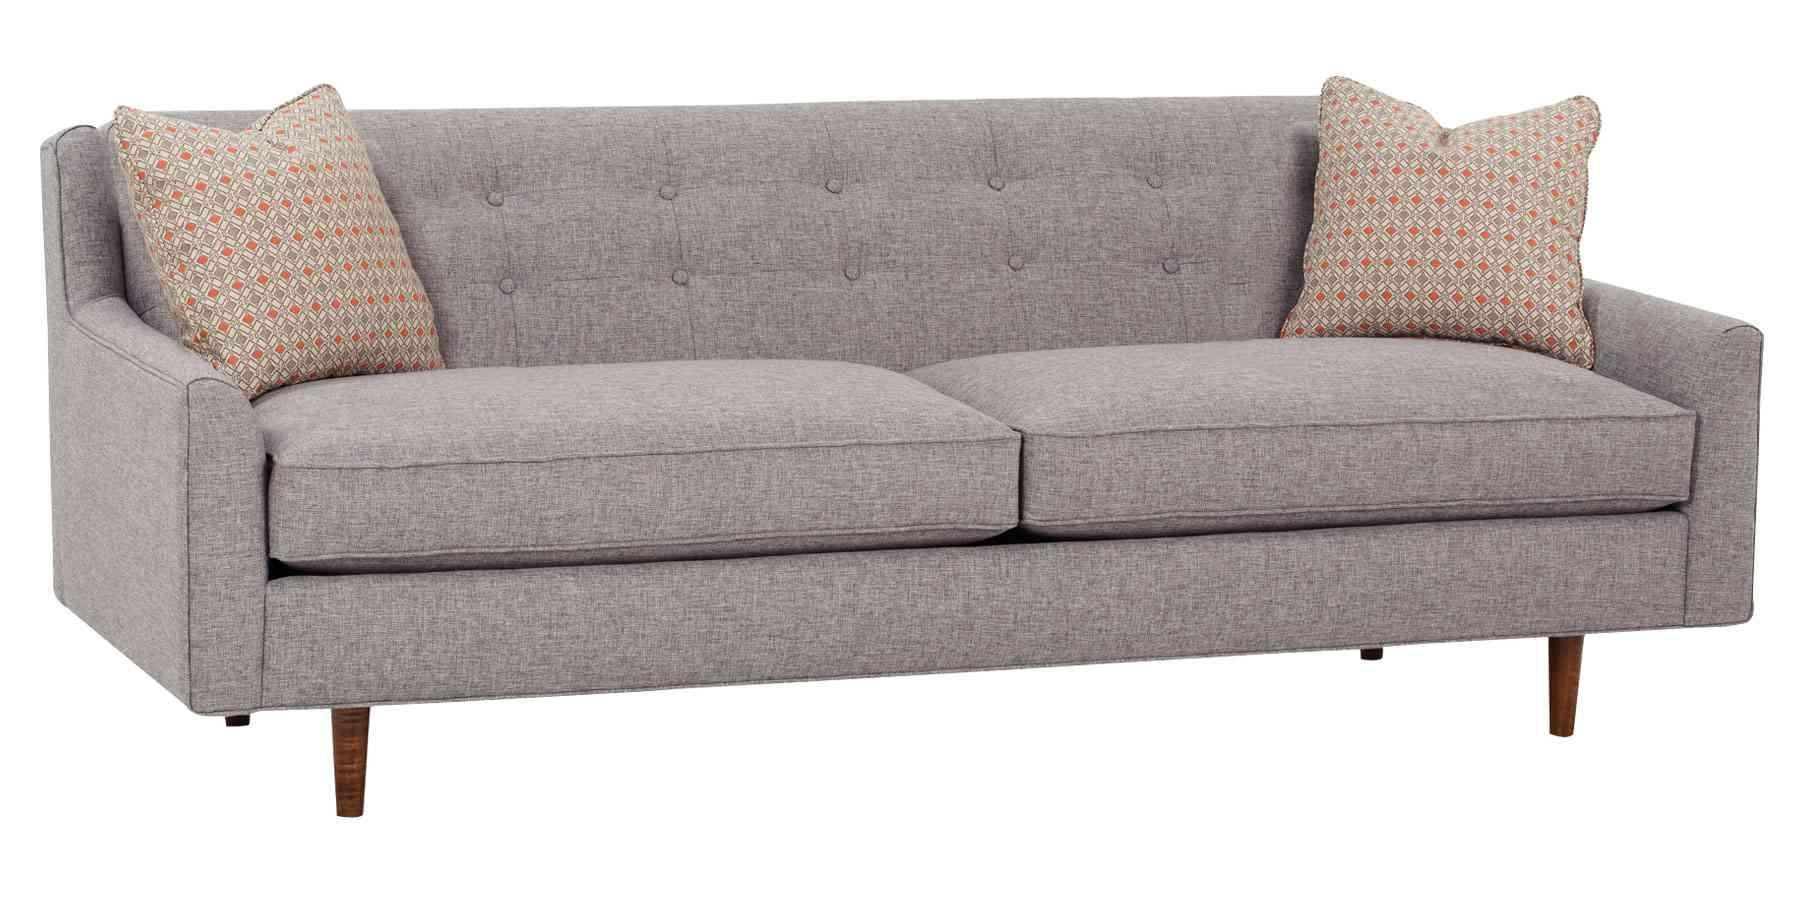 Bedroom Furniture : Danish Modern Furniture Compact Linoleum Decor For Asian Style Sofas (Image 8 of 20)